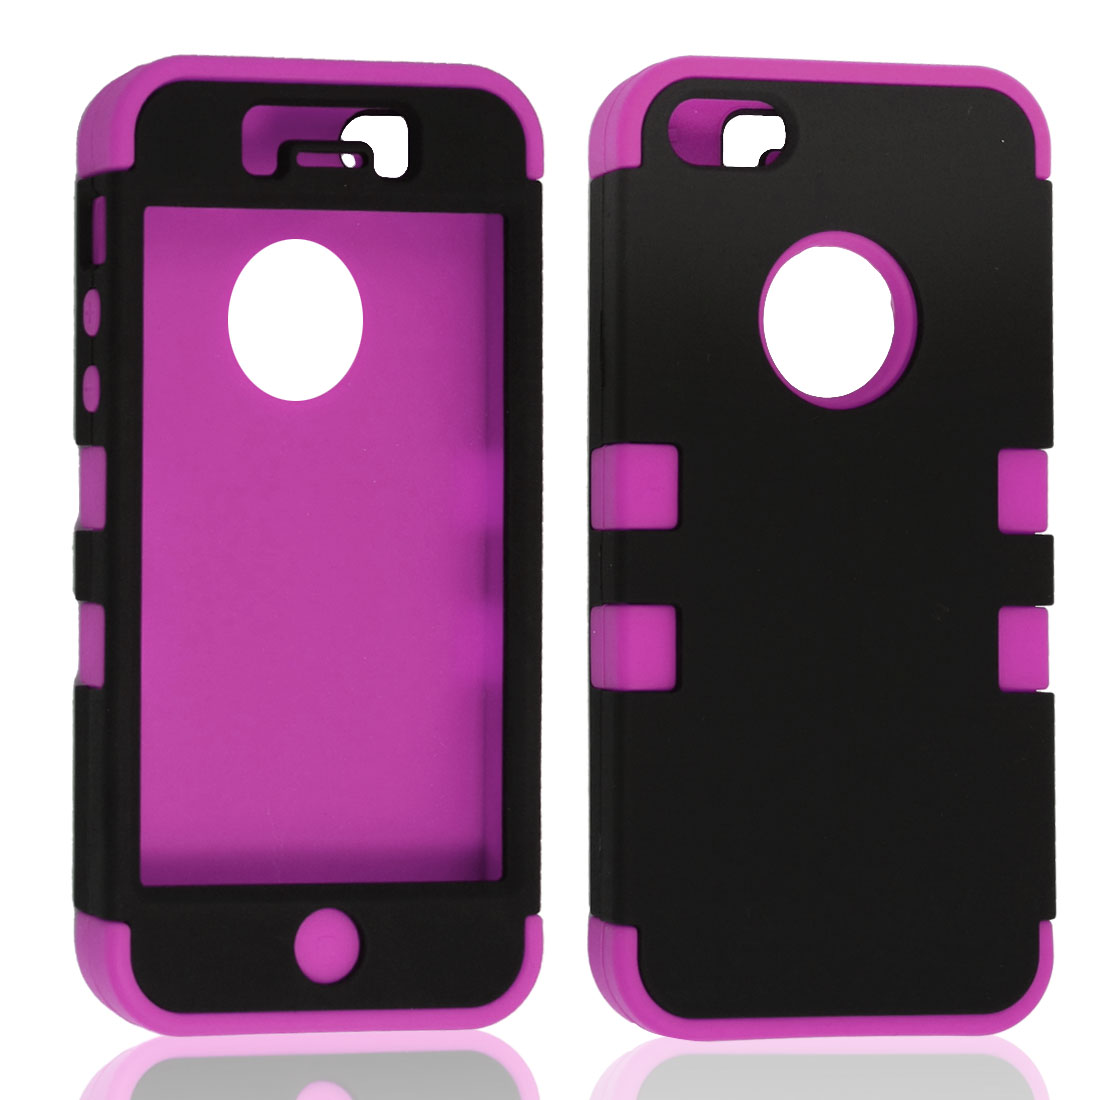 Magenta Black Case Protector for Apple iPhone 5 5G